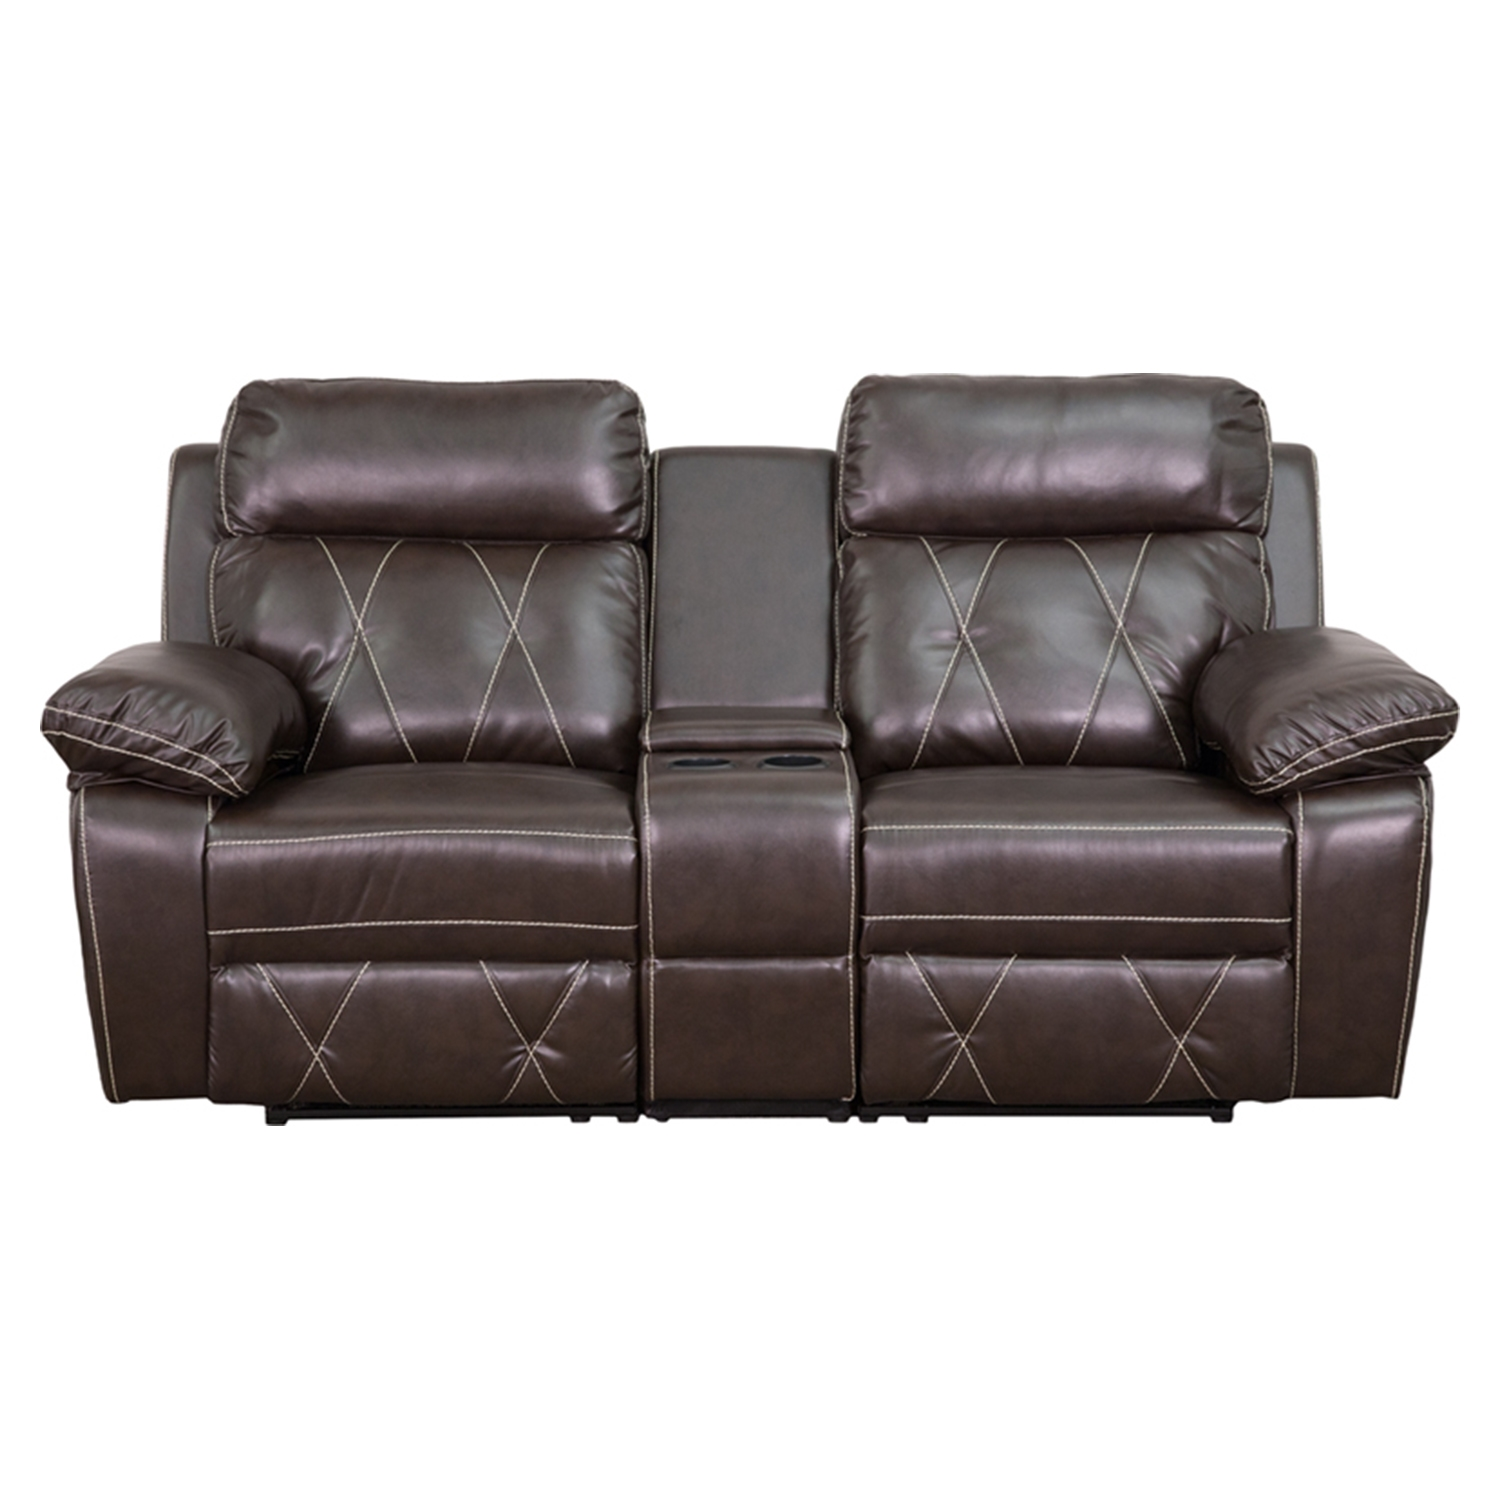 Reel Comfort Series 2-Seat Leather Recliner - Brown Straight Cup Holders  sc 1 st  DCG Stores & Home Theater Seating | DCG Stores islam-shia.org